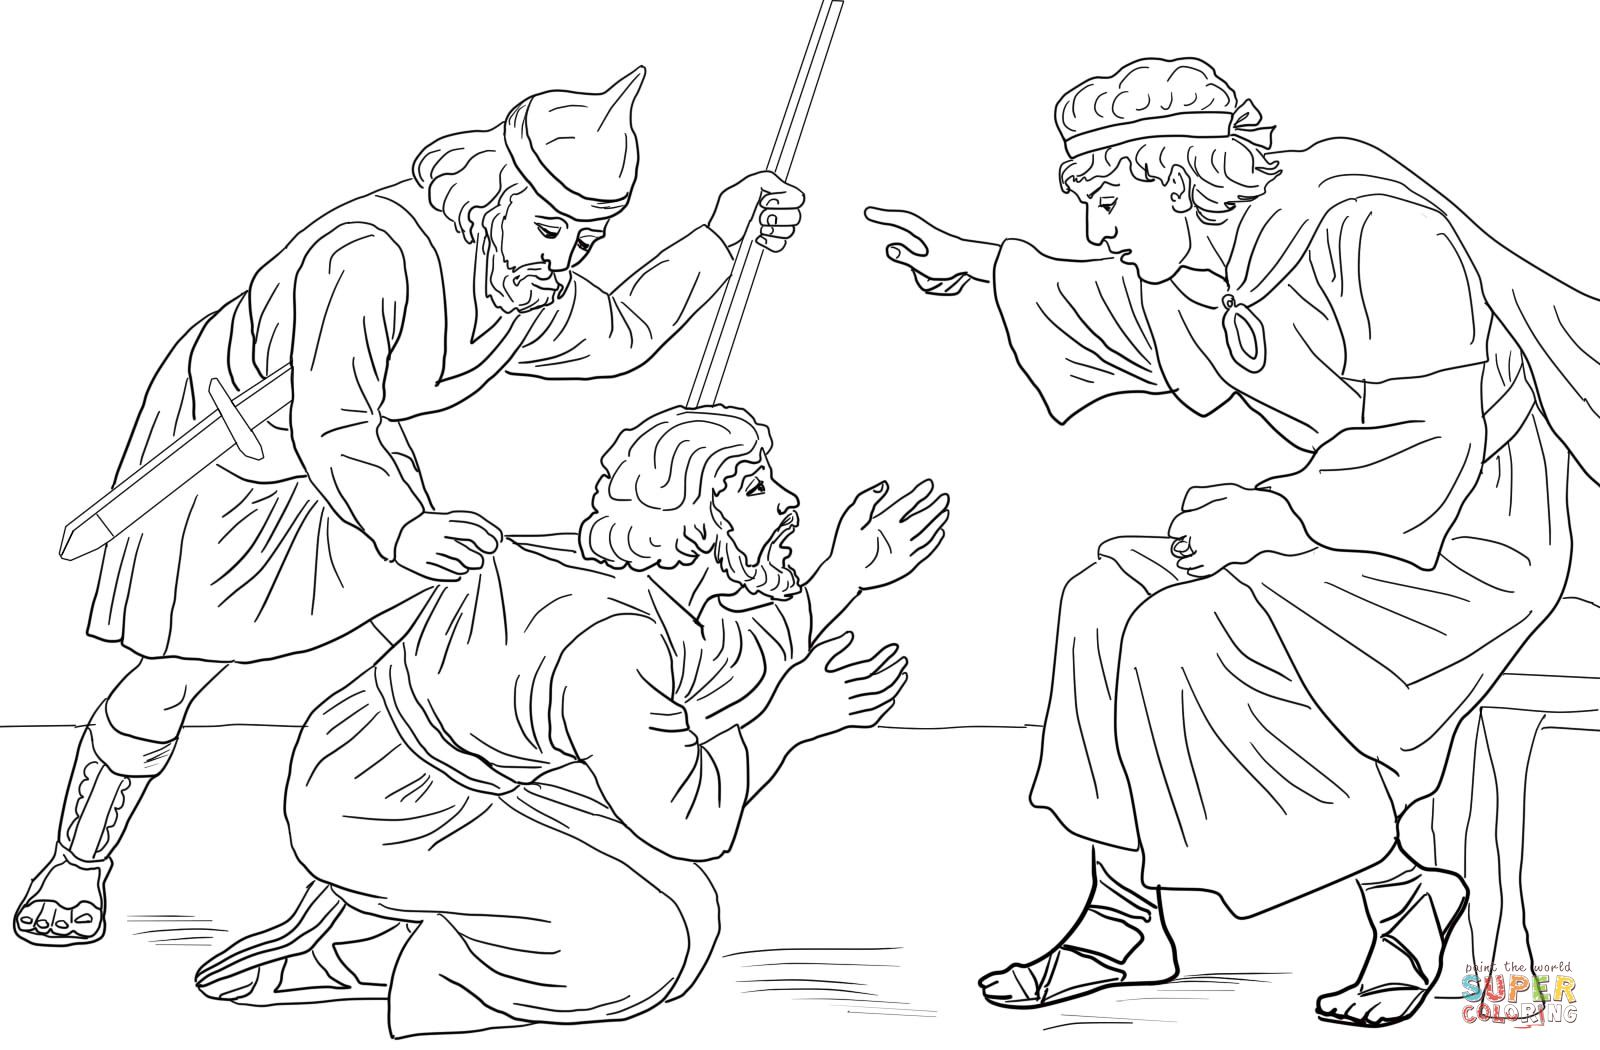 Coloring Page For Parable Of The Unmerciful Servant 1600